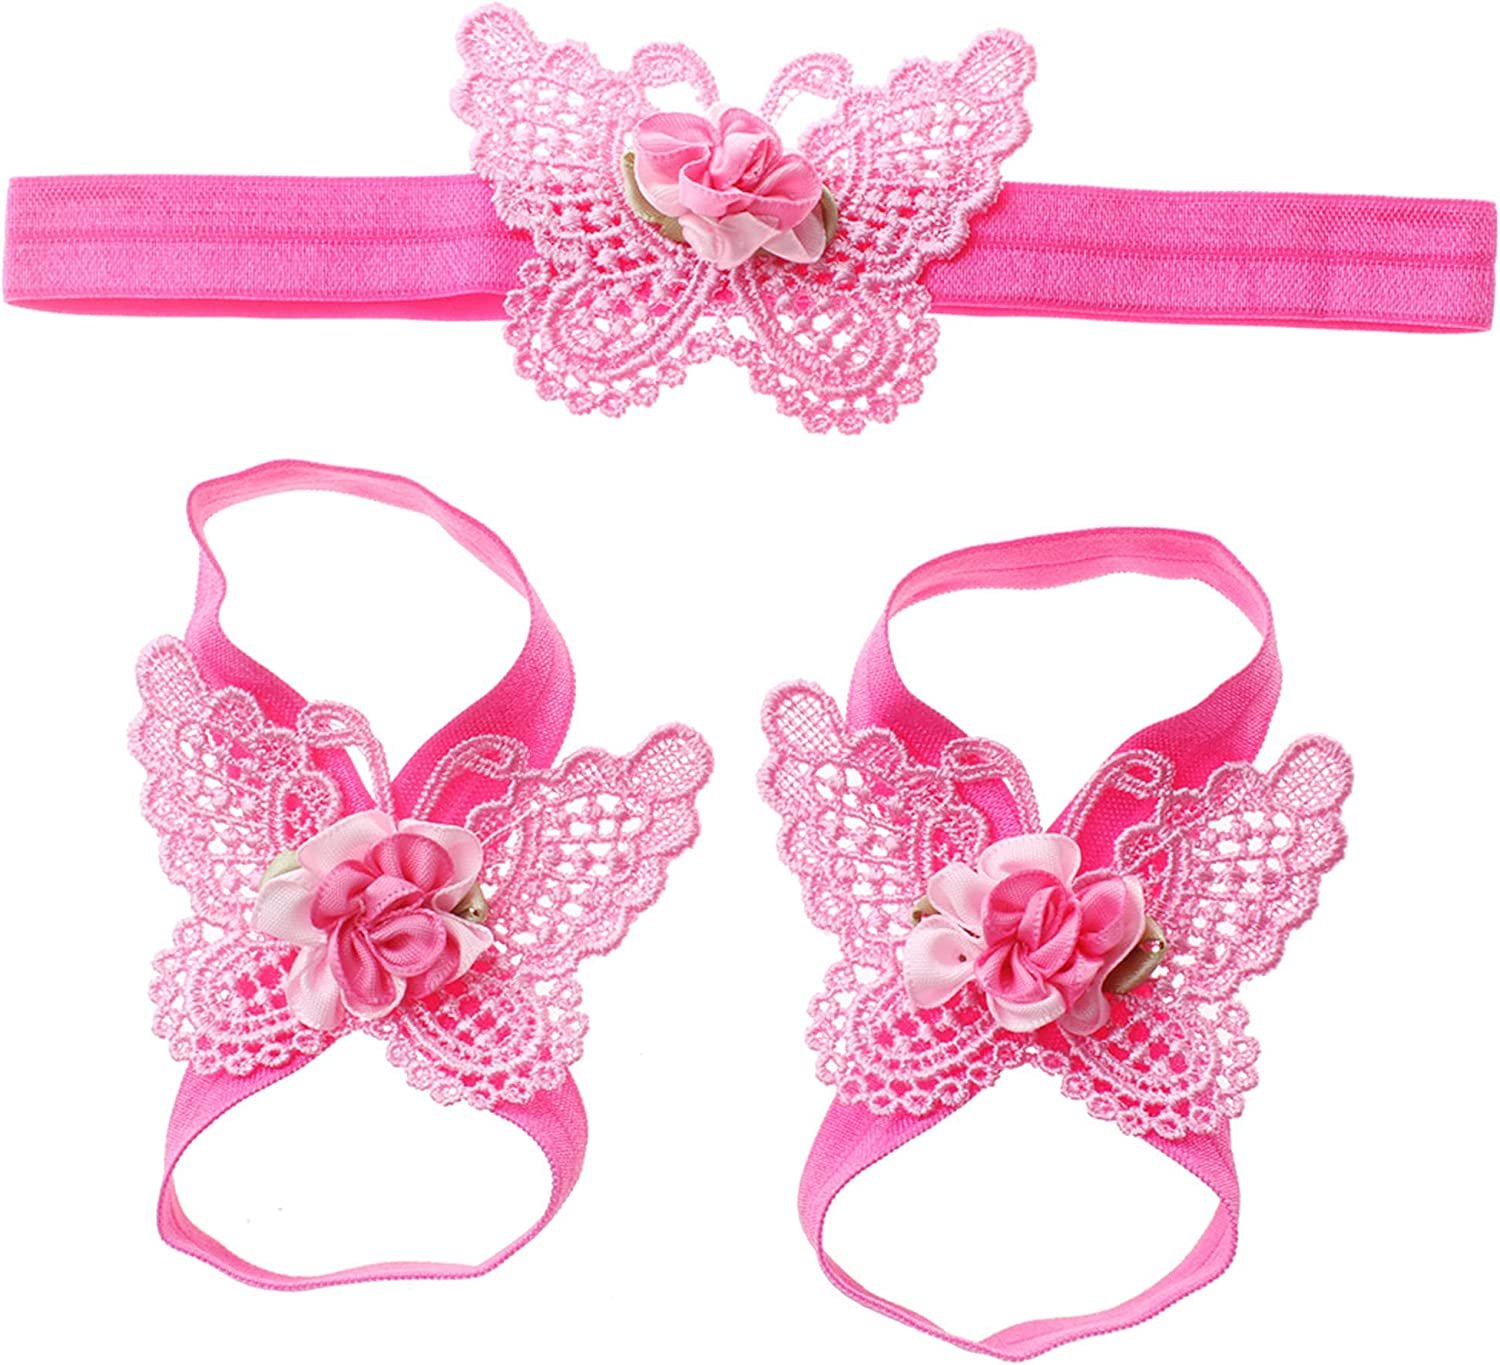 Baby girls infant crochet butterfly headbands and knitted flower barefoot sandals.(BBFJ3)